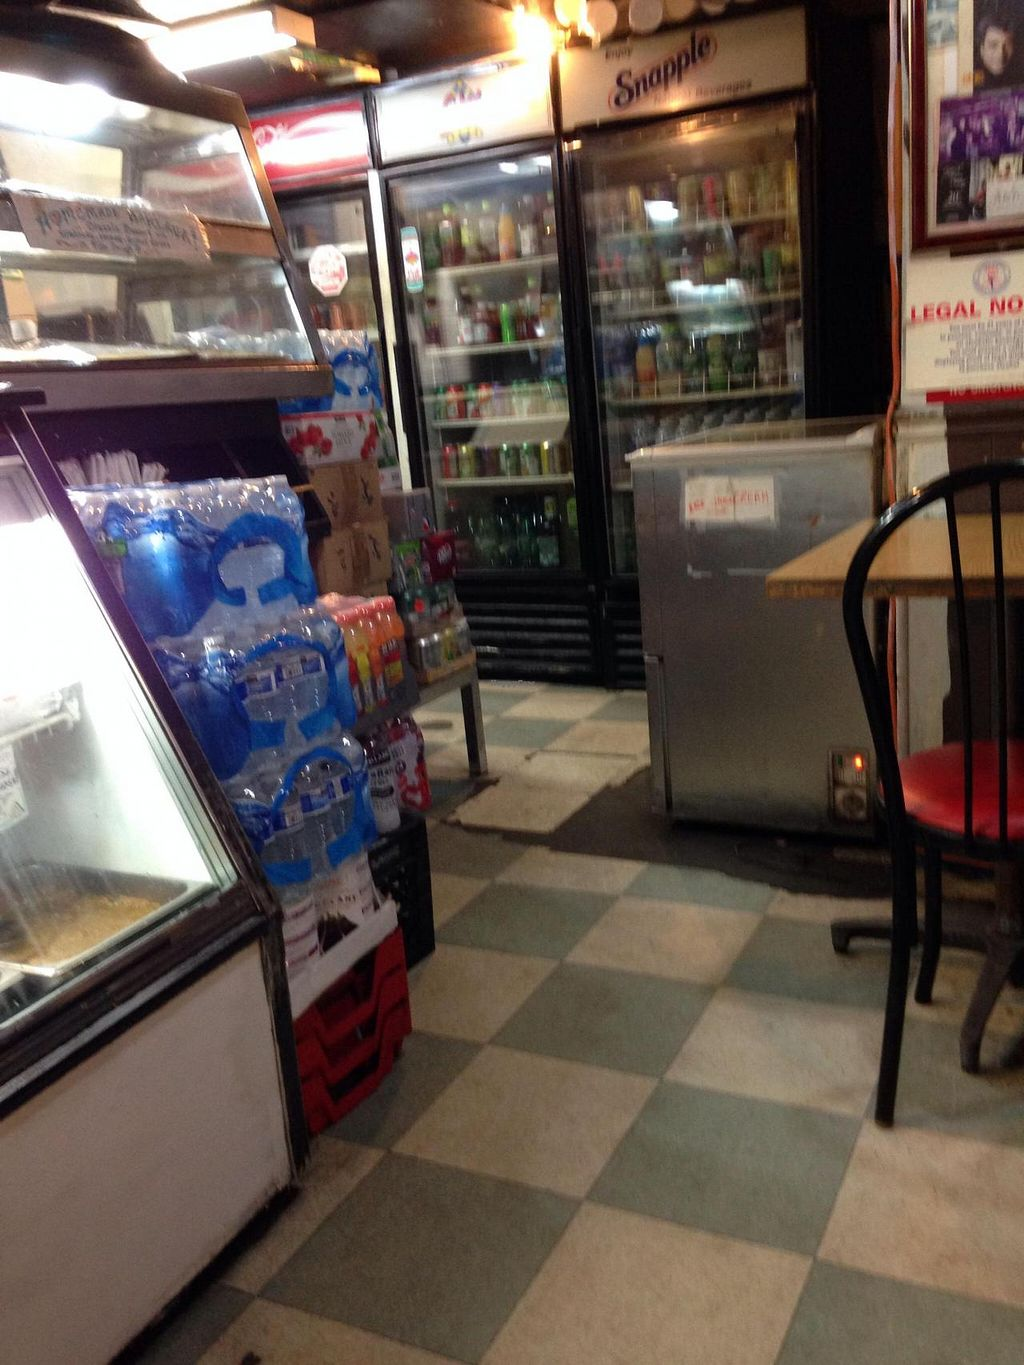 """Photo of D C Cafe  by <a href=""""/members/profile/cookiem"""">cookiem</a> <br/>Beverage cooler <br/> April 25, 2014  - <a href='/contact/abuse/image/46387/68541'>Report</a>"""